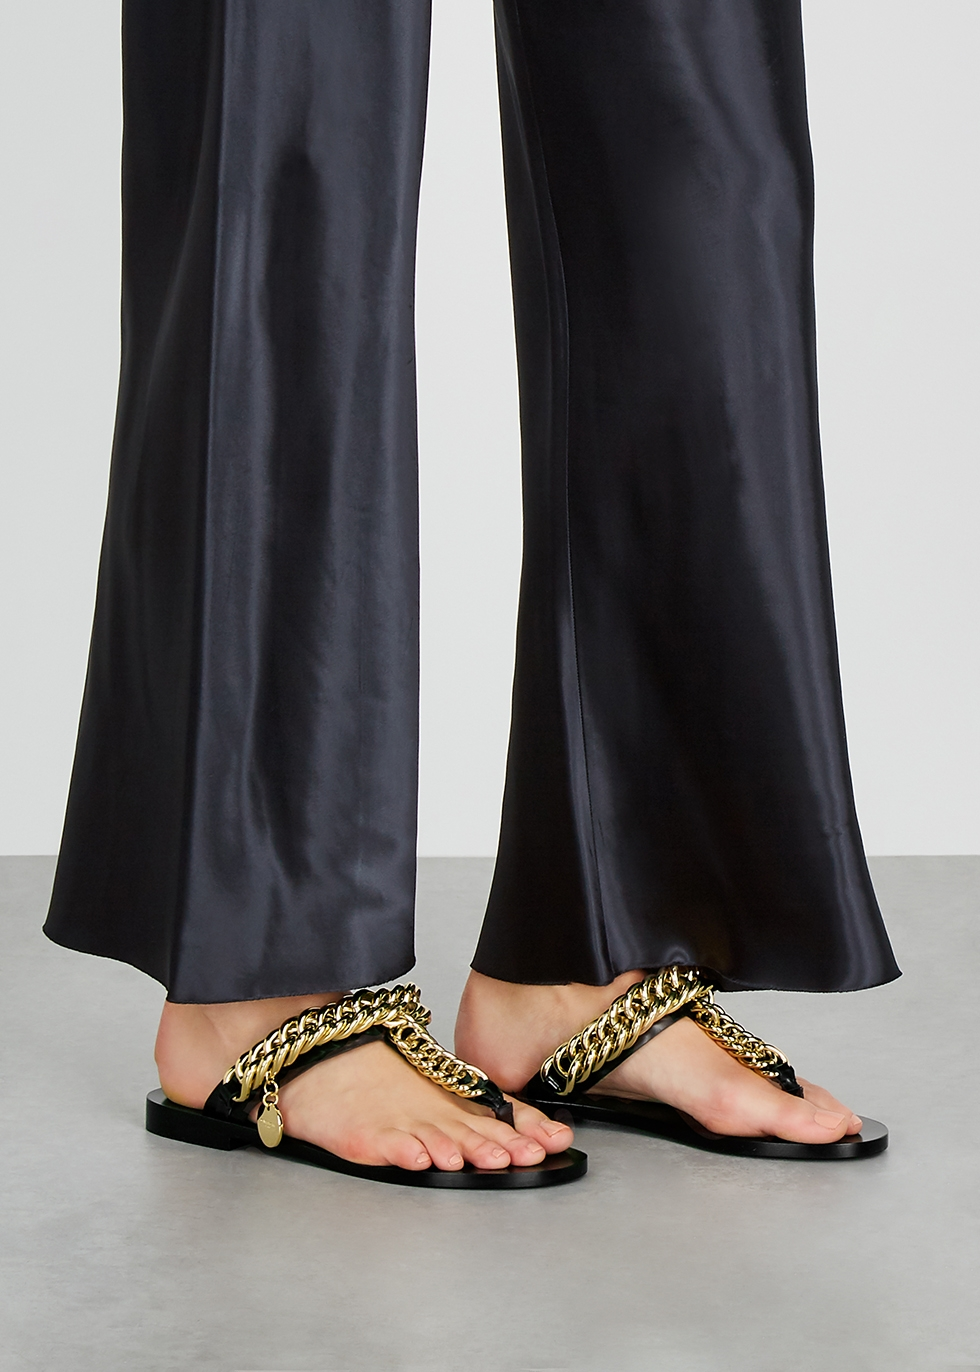 Givenchy Black chain-embellished